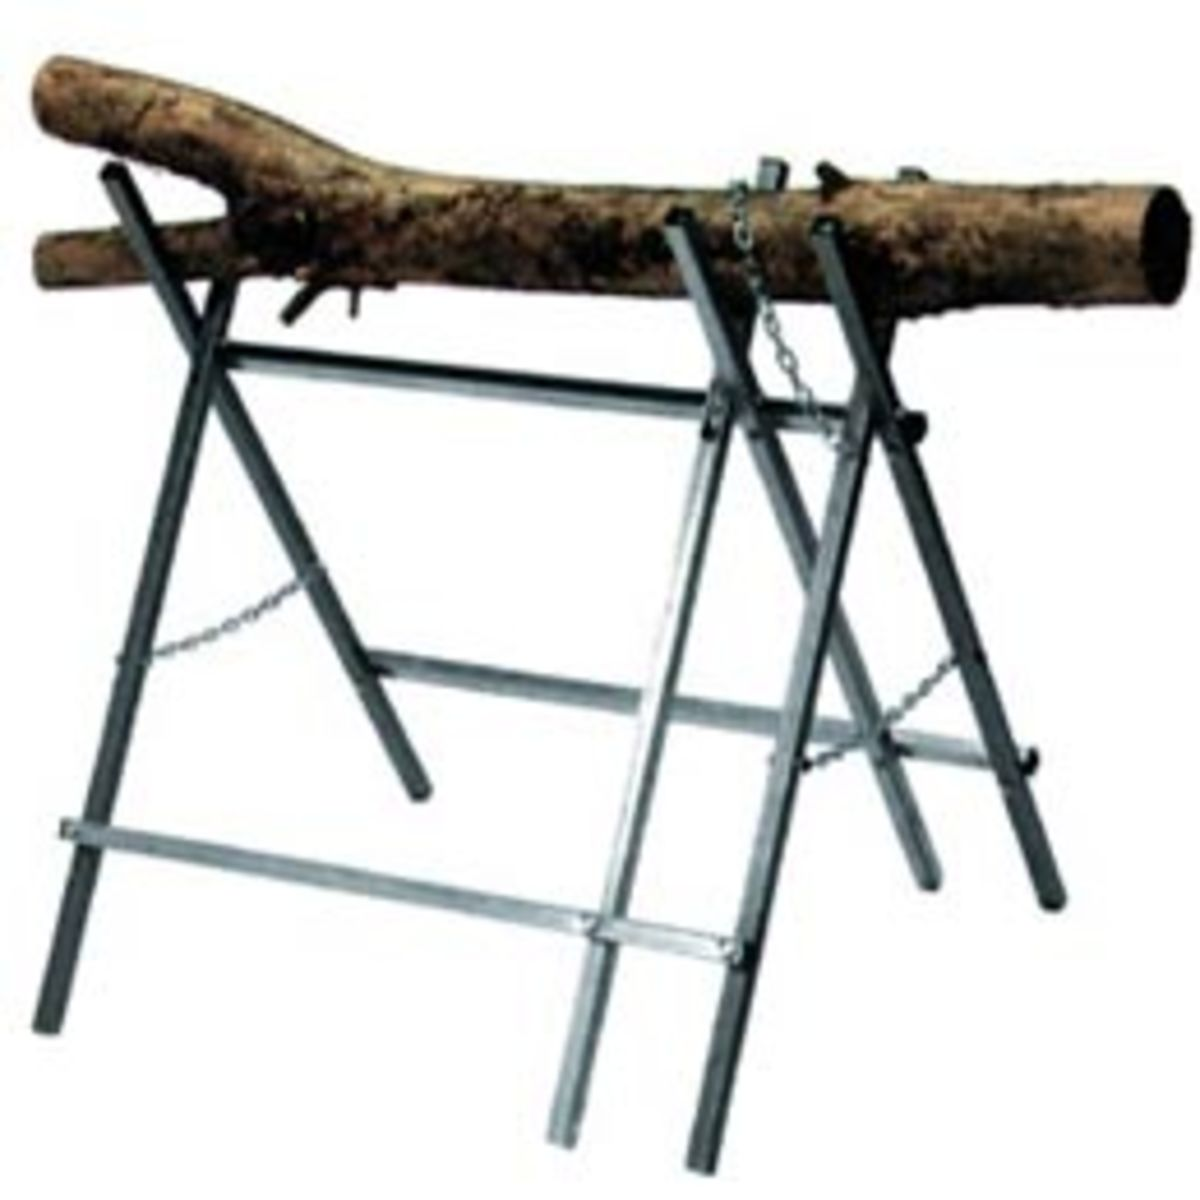 Steel sawhorse like mine suitable for log cutting